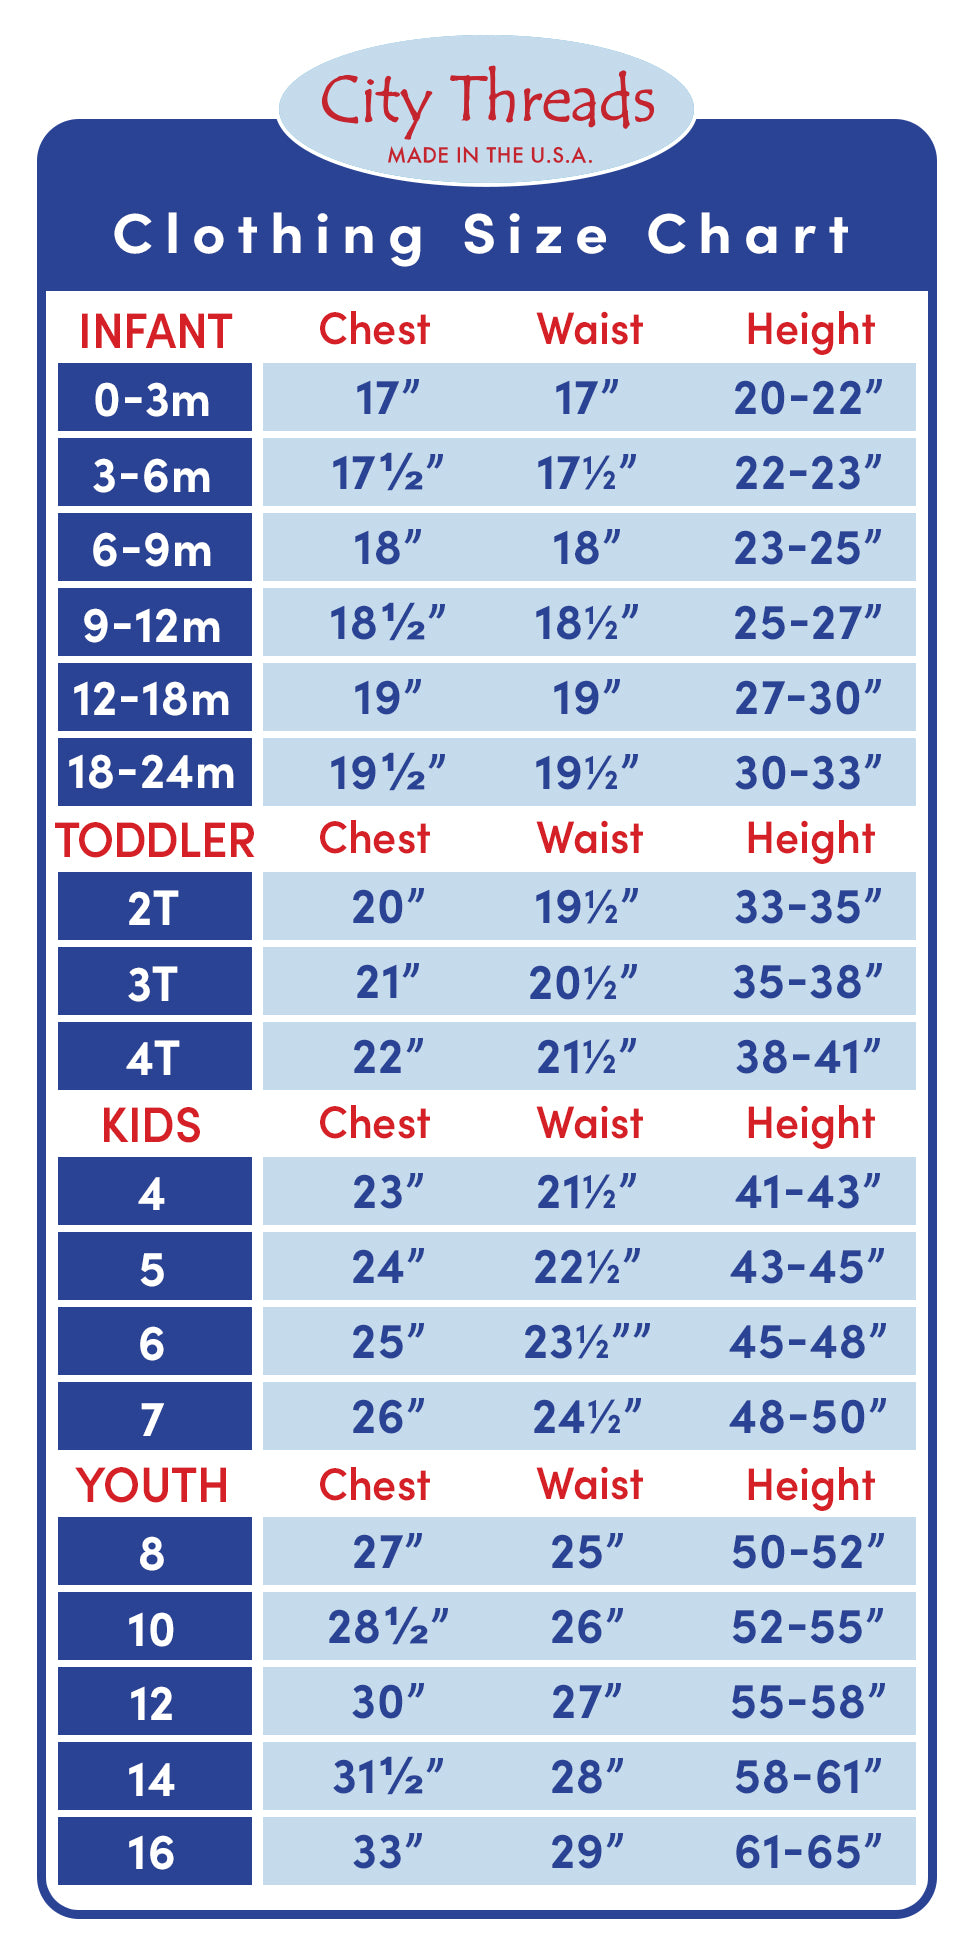 Size Chart for Kids Clothing | City Threads | Made in USA